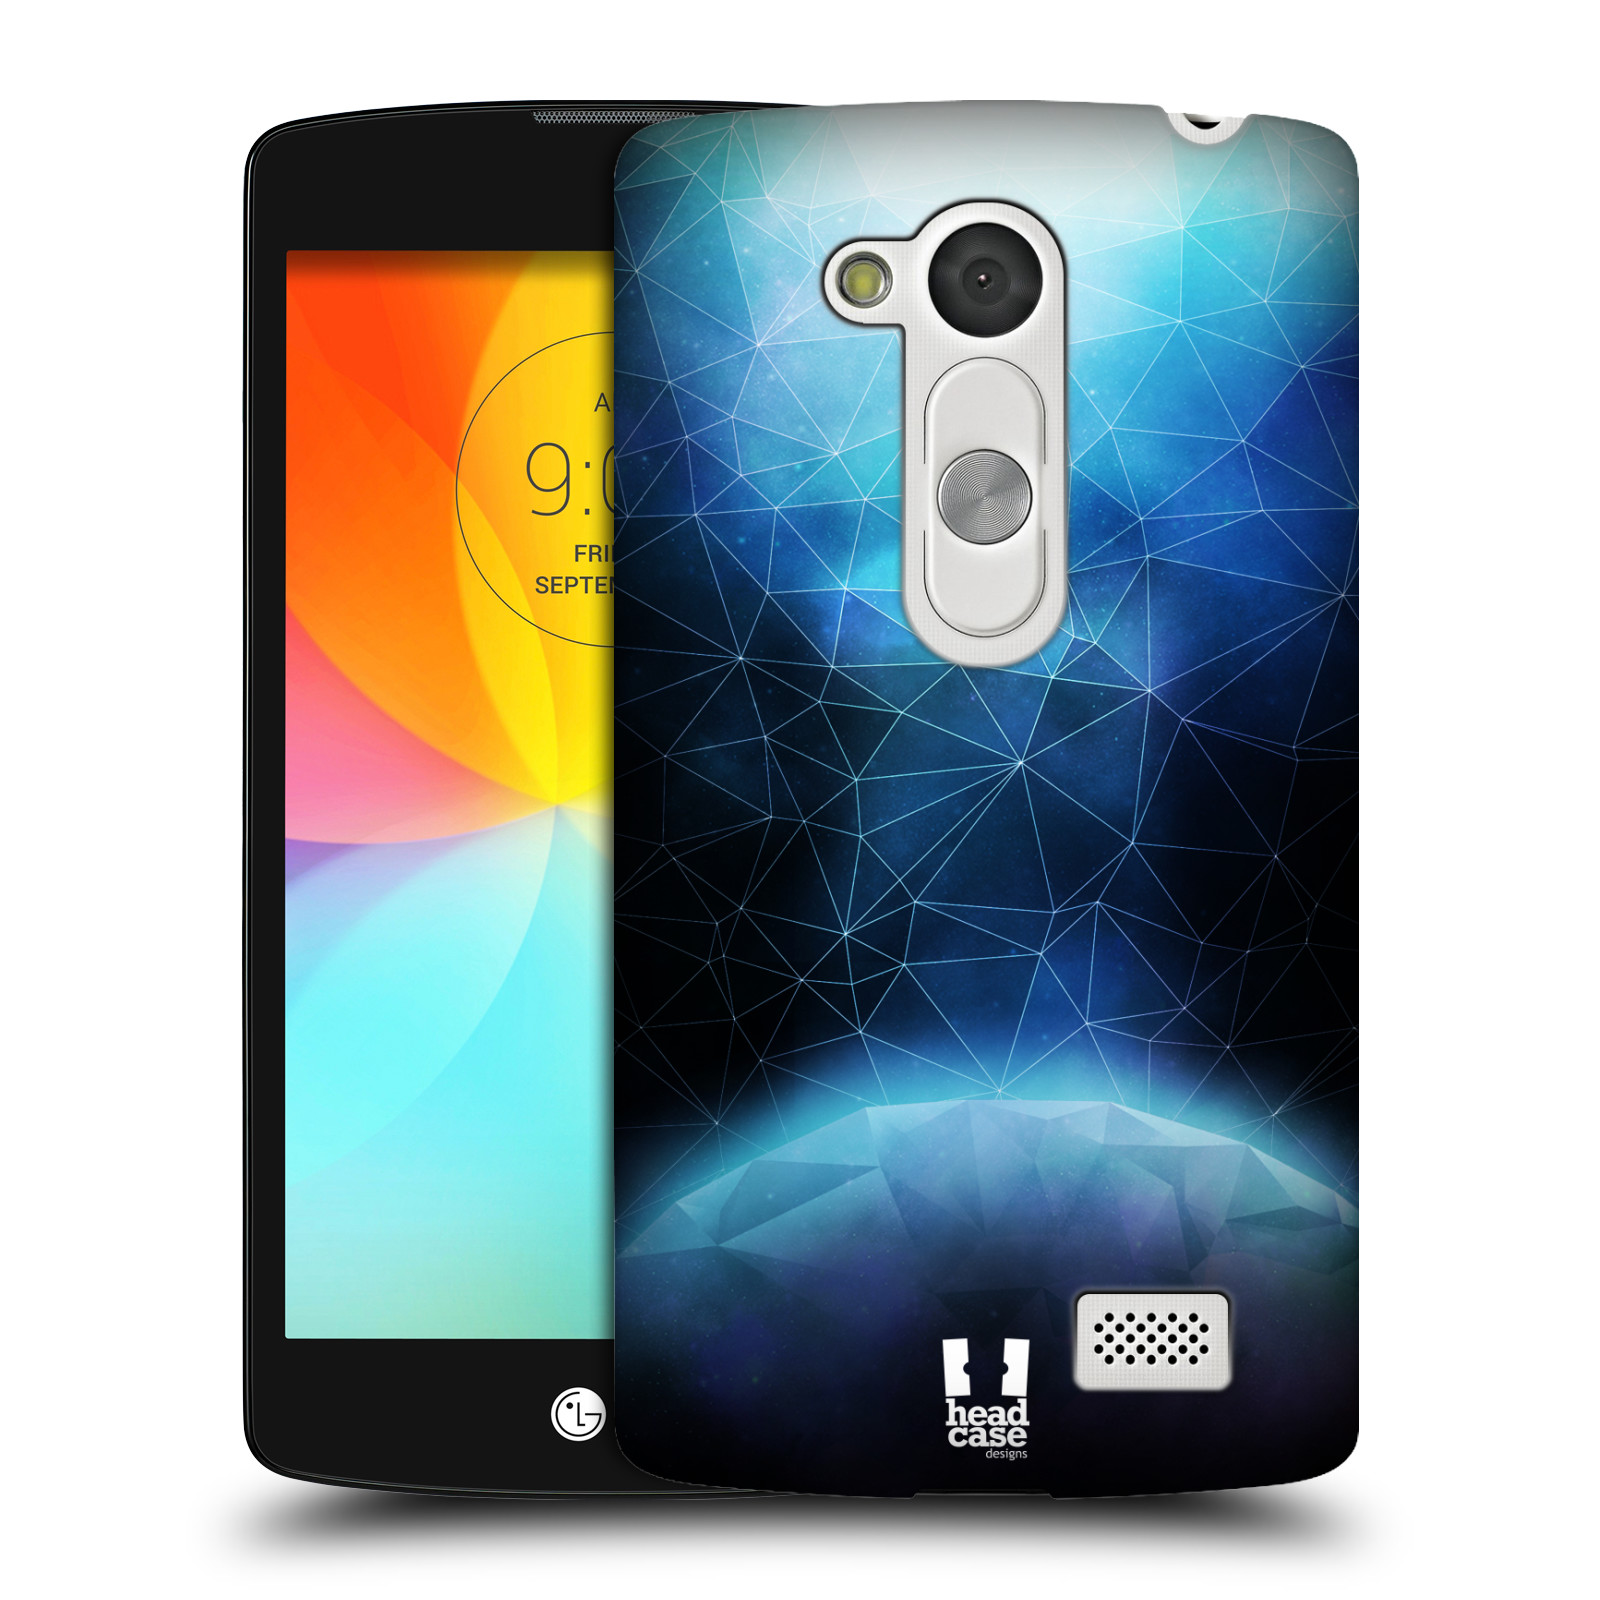 HEAD CASE DESIGNS DISCOVERING UNIVERSE HARD BACK CASE FOR LG L FINO D290N